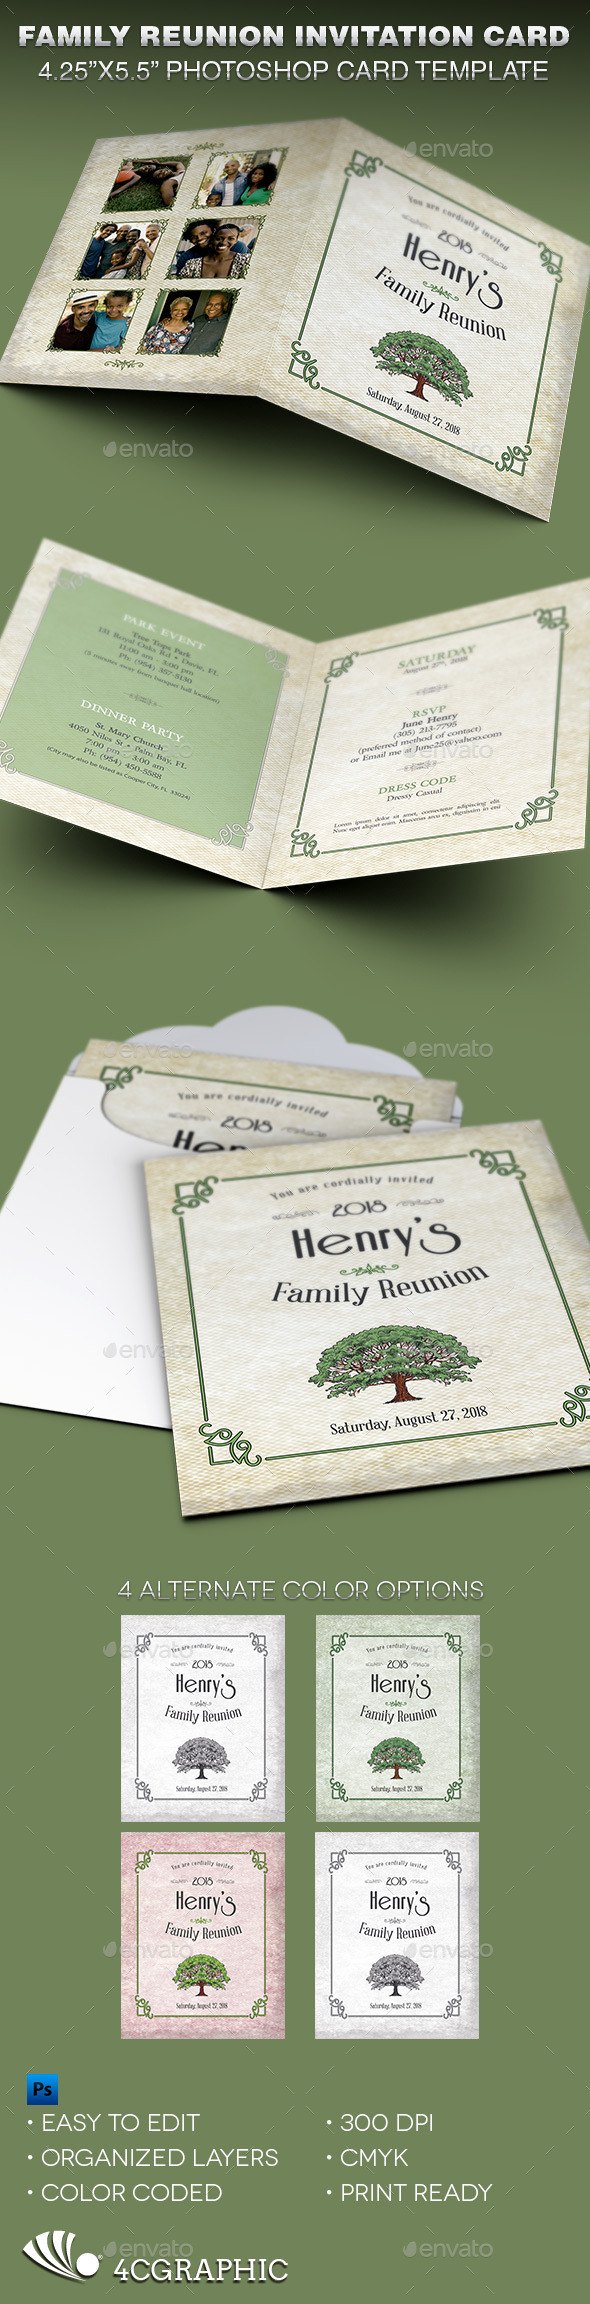 Family Reunion Invitation Card Template by 4cgraphic | GraphicRiver